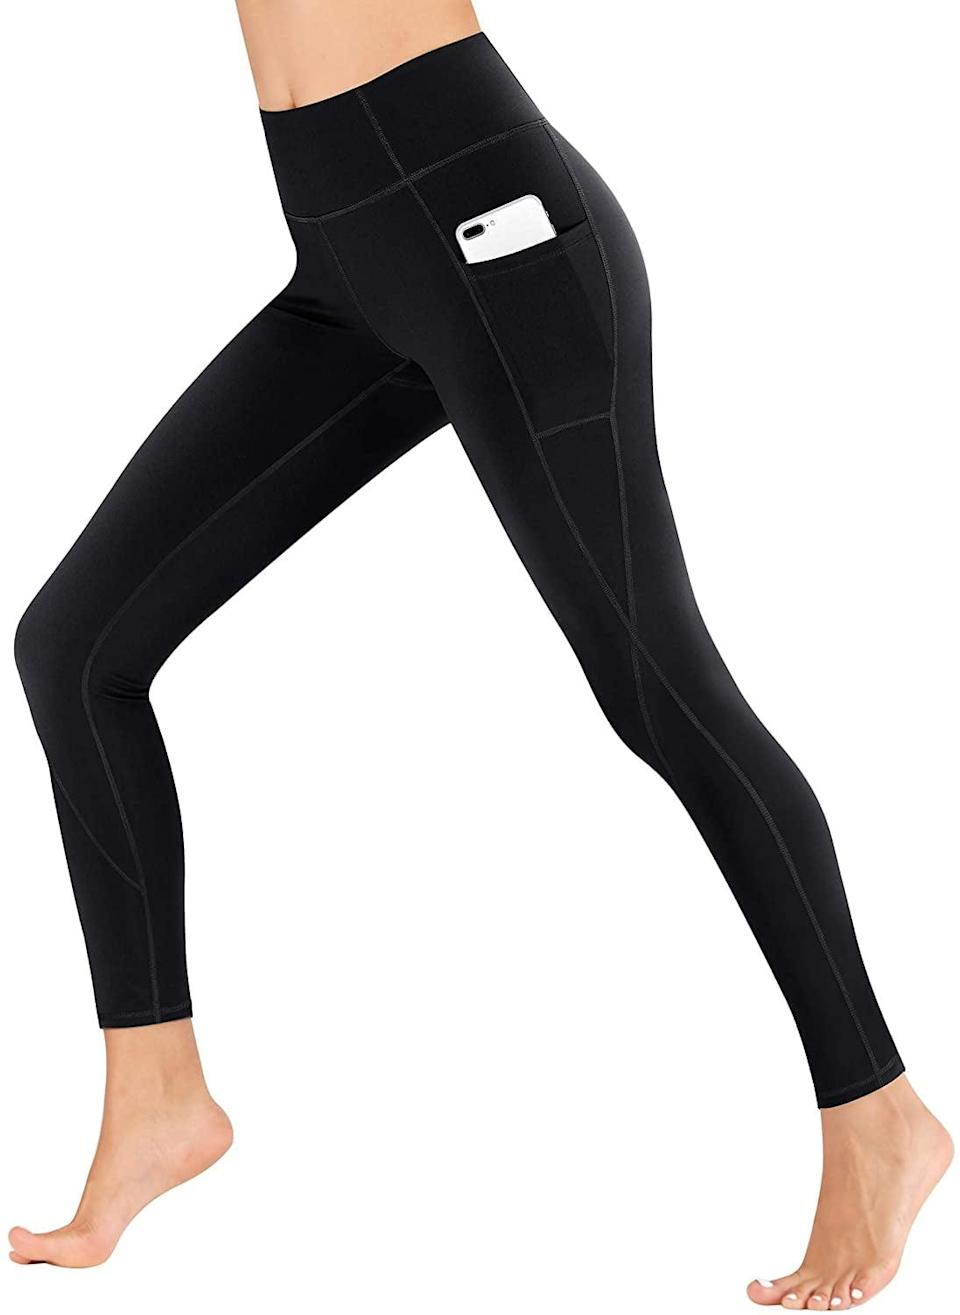 <p>From lifting weights to walking outdoors, the <span>Heathyoga High Waisted Leggings With Pockets</span> ($20, originally $30) will be your new favorite active leggings.</p>